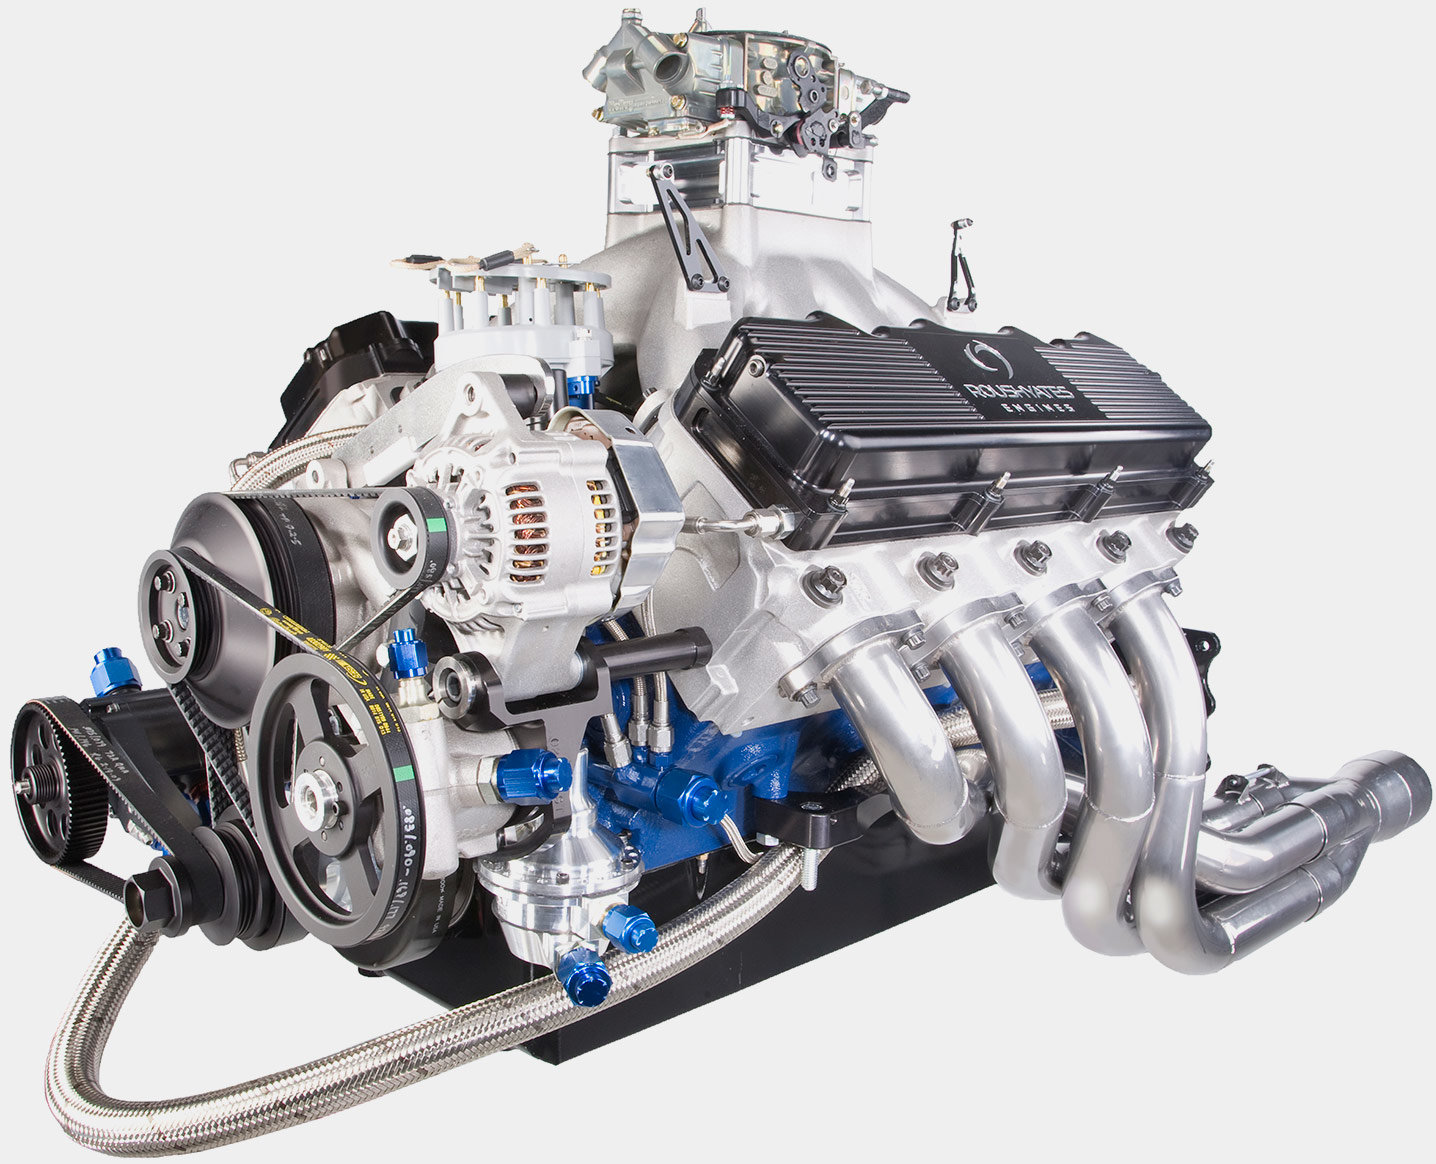 Powering Into The Playoffs | Roush Yates Engines